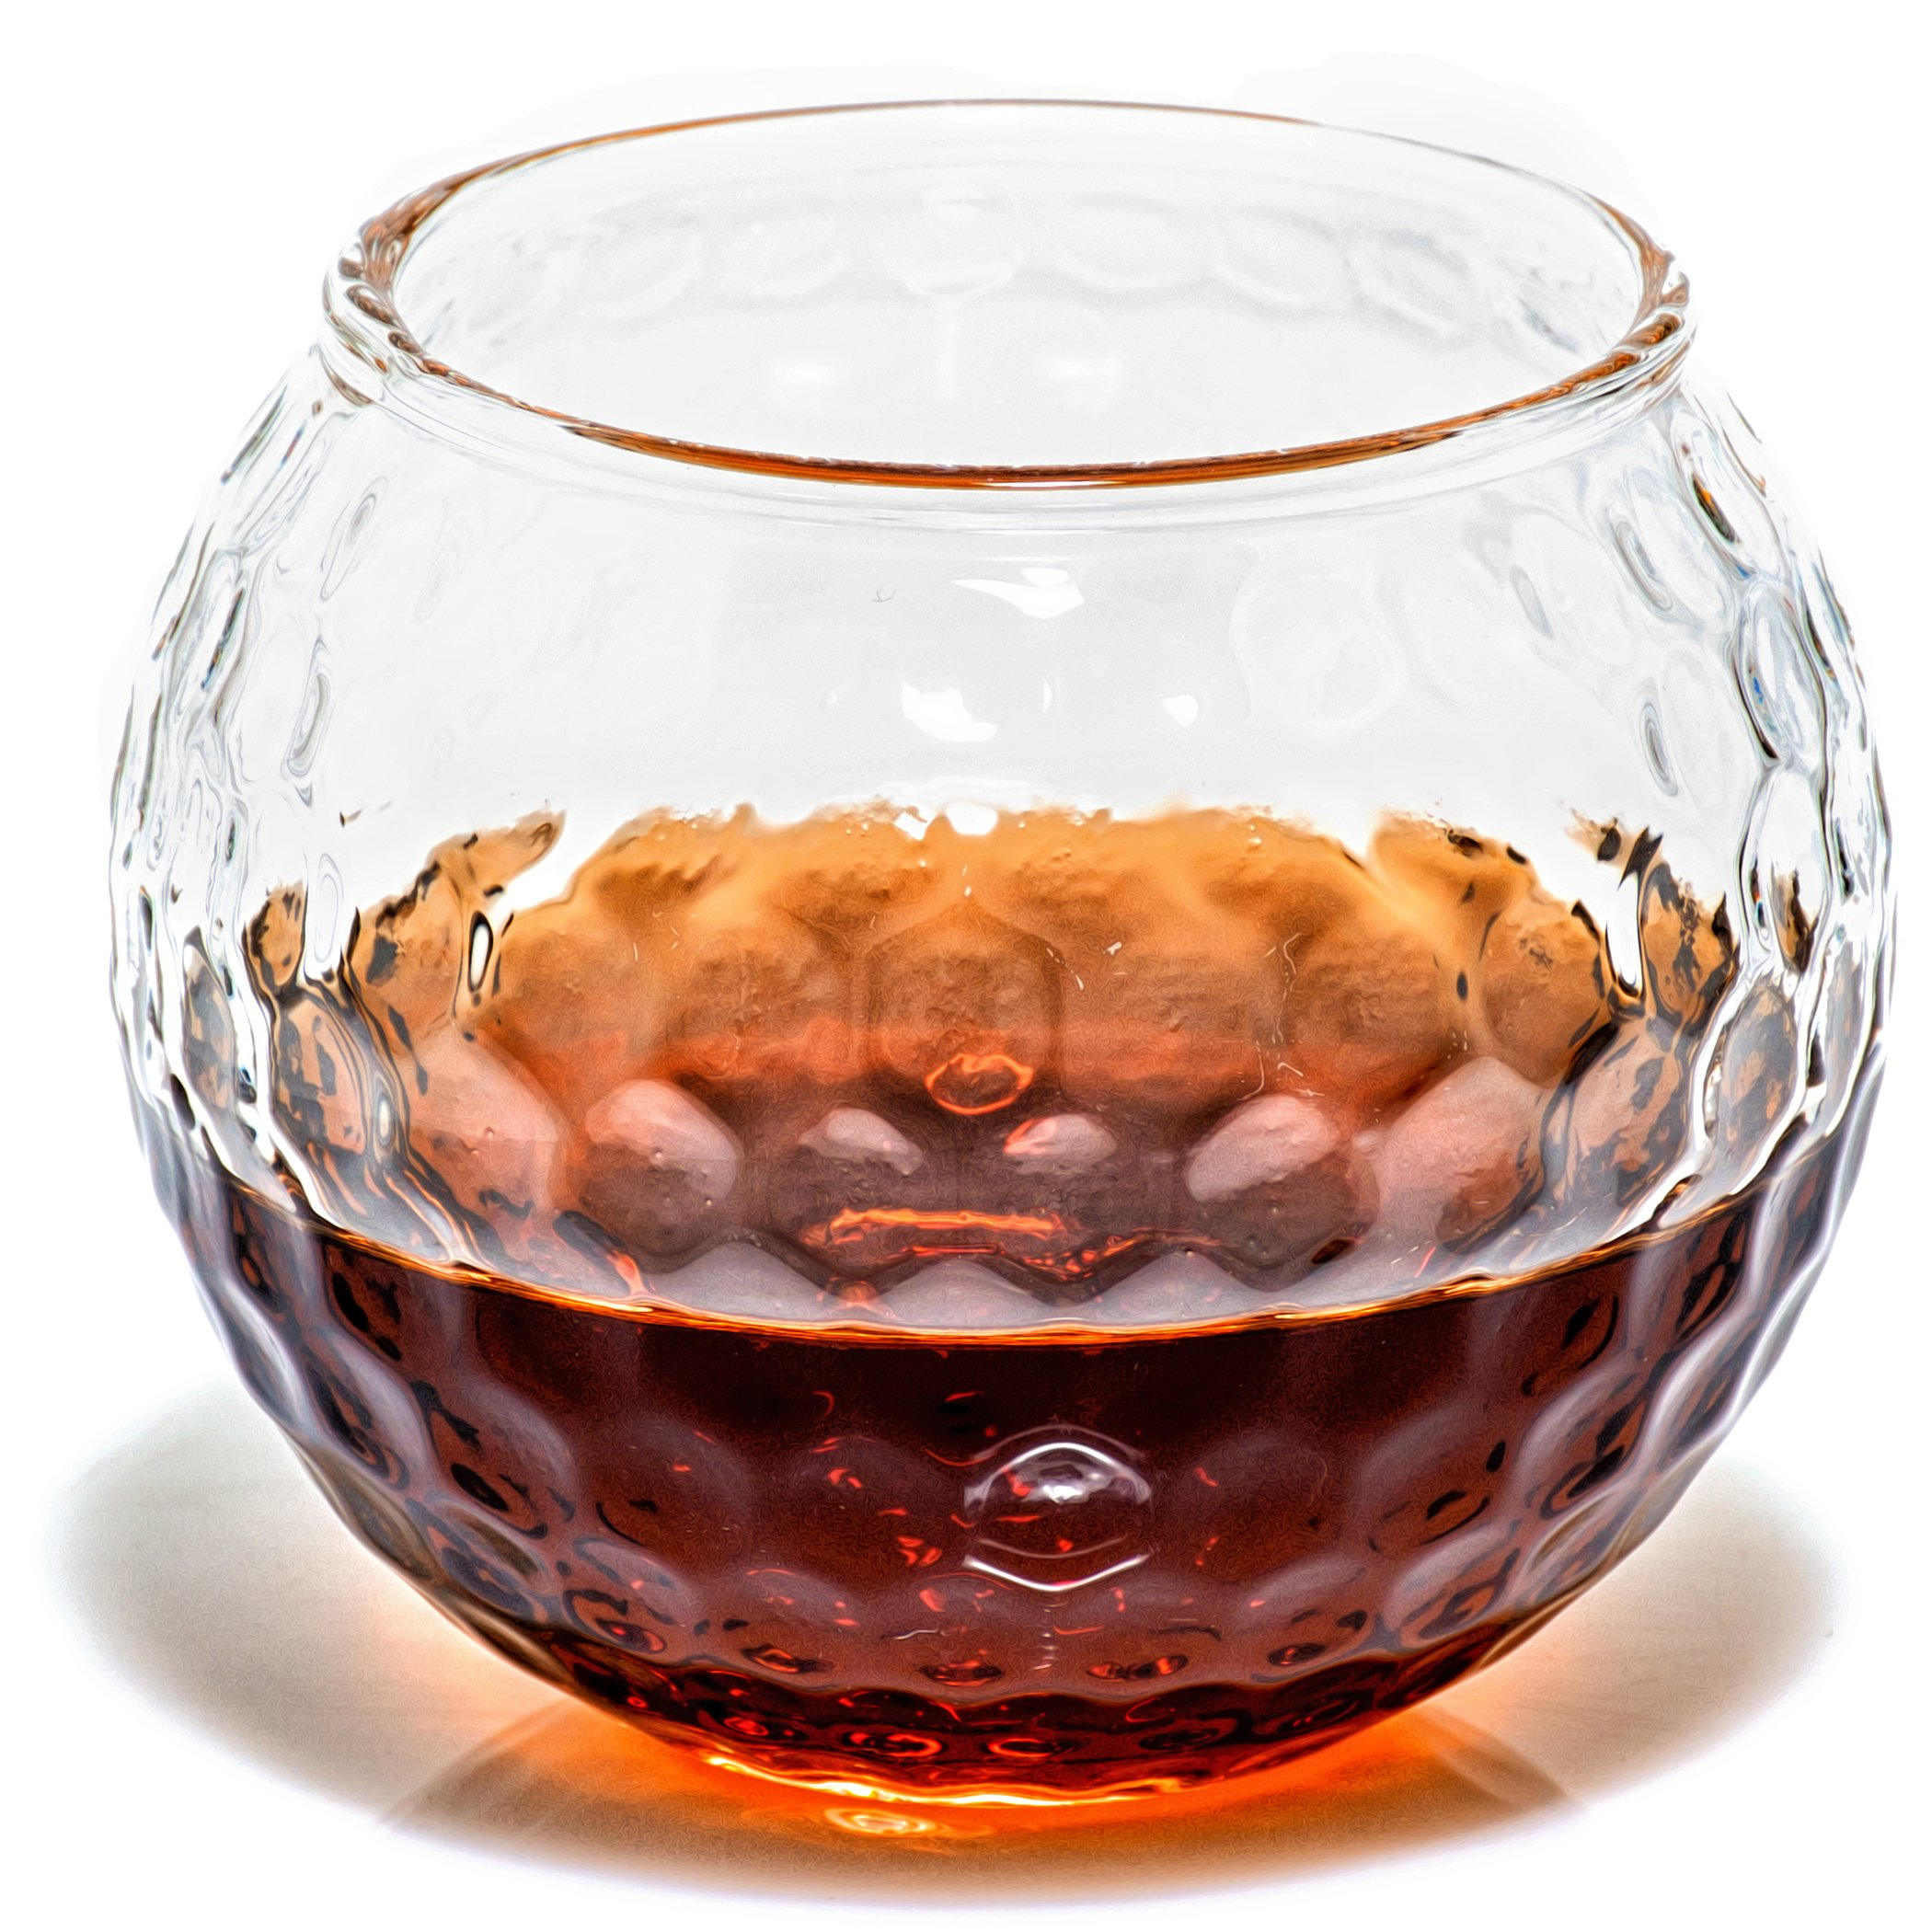 Golf Whiskey Glasses - Rocks Glass for Rum, Scotch, Wine Glasses - Bourbon Gifts - 10oz Cocktail, Lowball, Old Fashioned Glass (Set of 2) Dad Golf Gifts for Men and Women Golfers Who Like Whiskey by Prestige Decanters